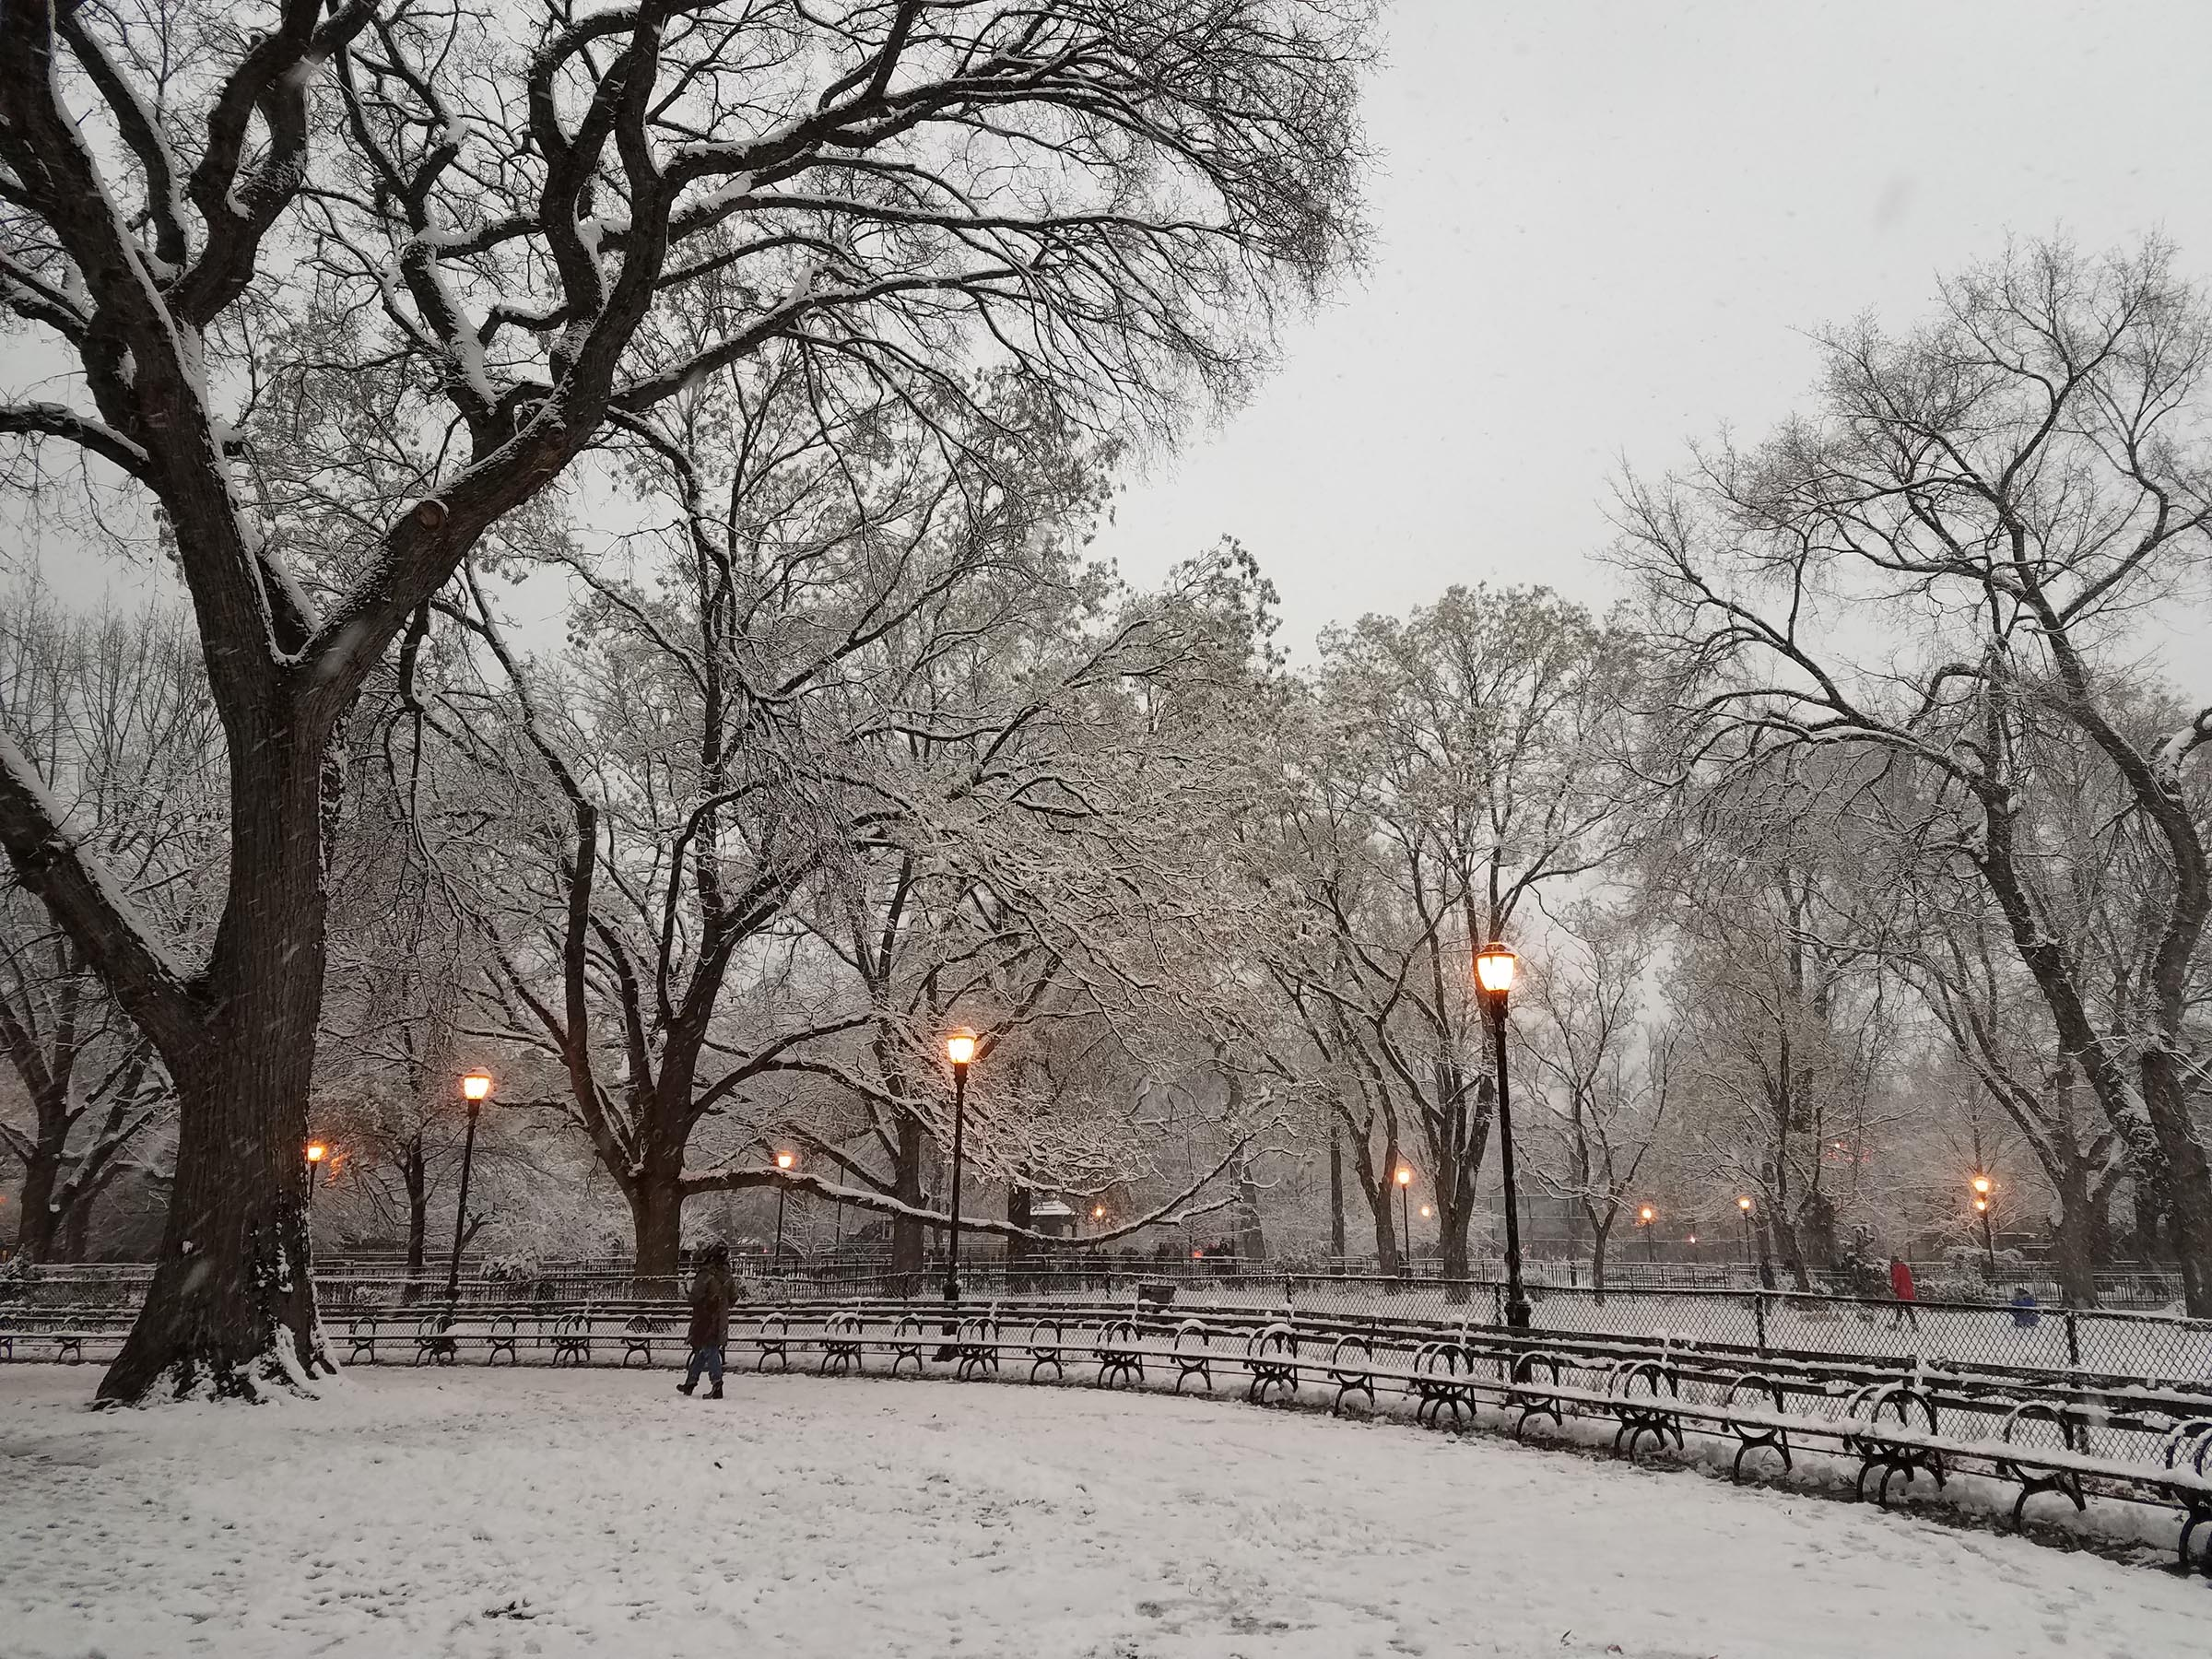 Daylight in a park, under a gray sky. The ground and trees are covered in a thin layer of snow. The street lamps are on. A few people walk in the distance.